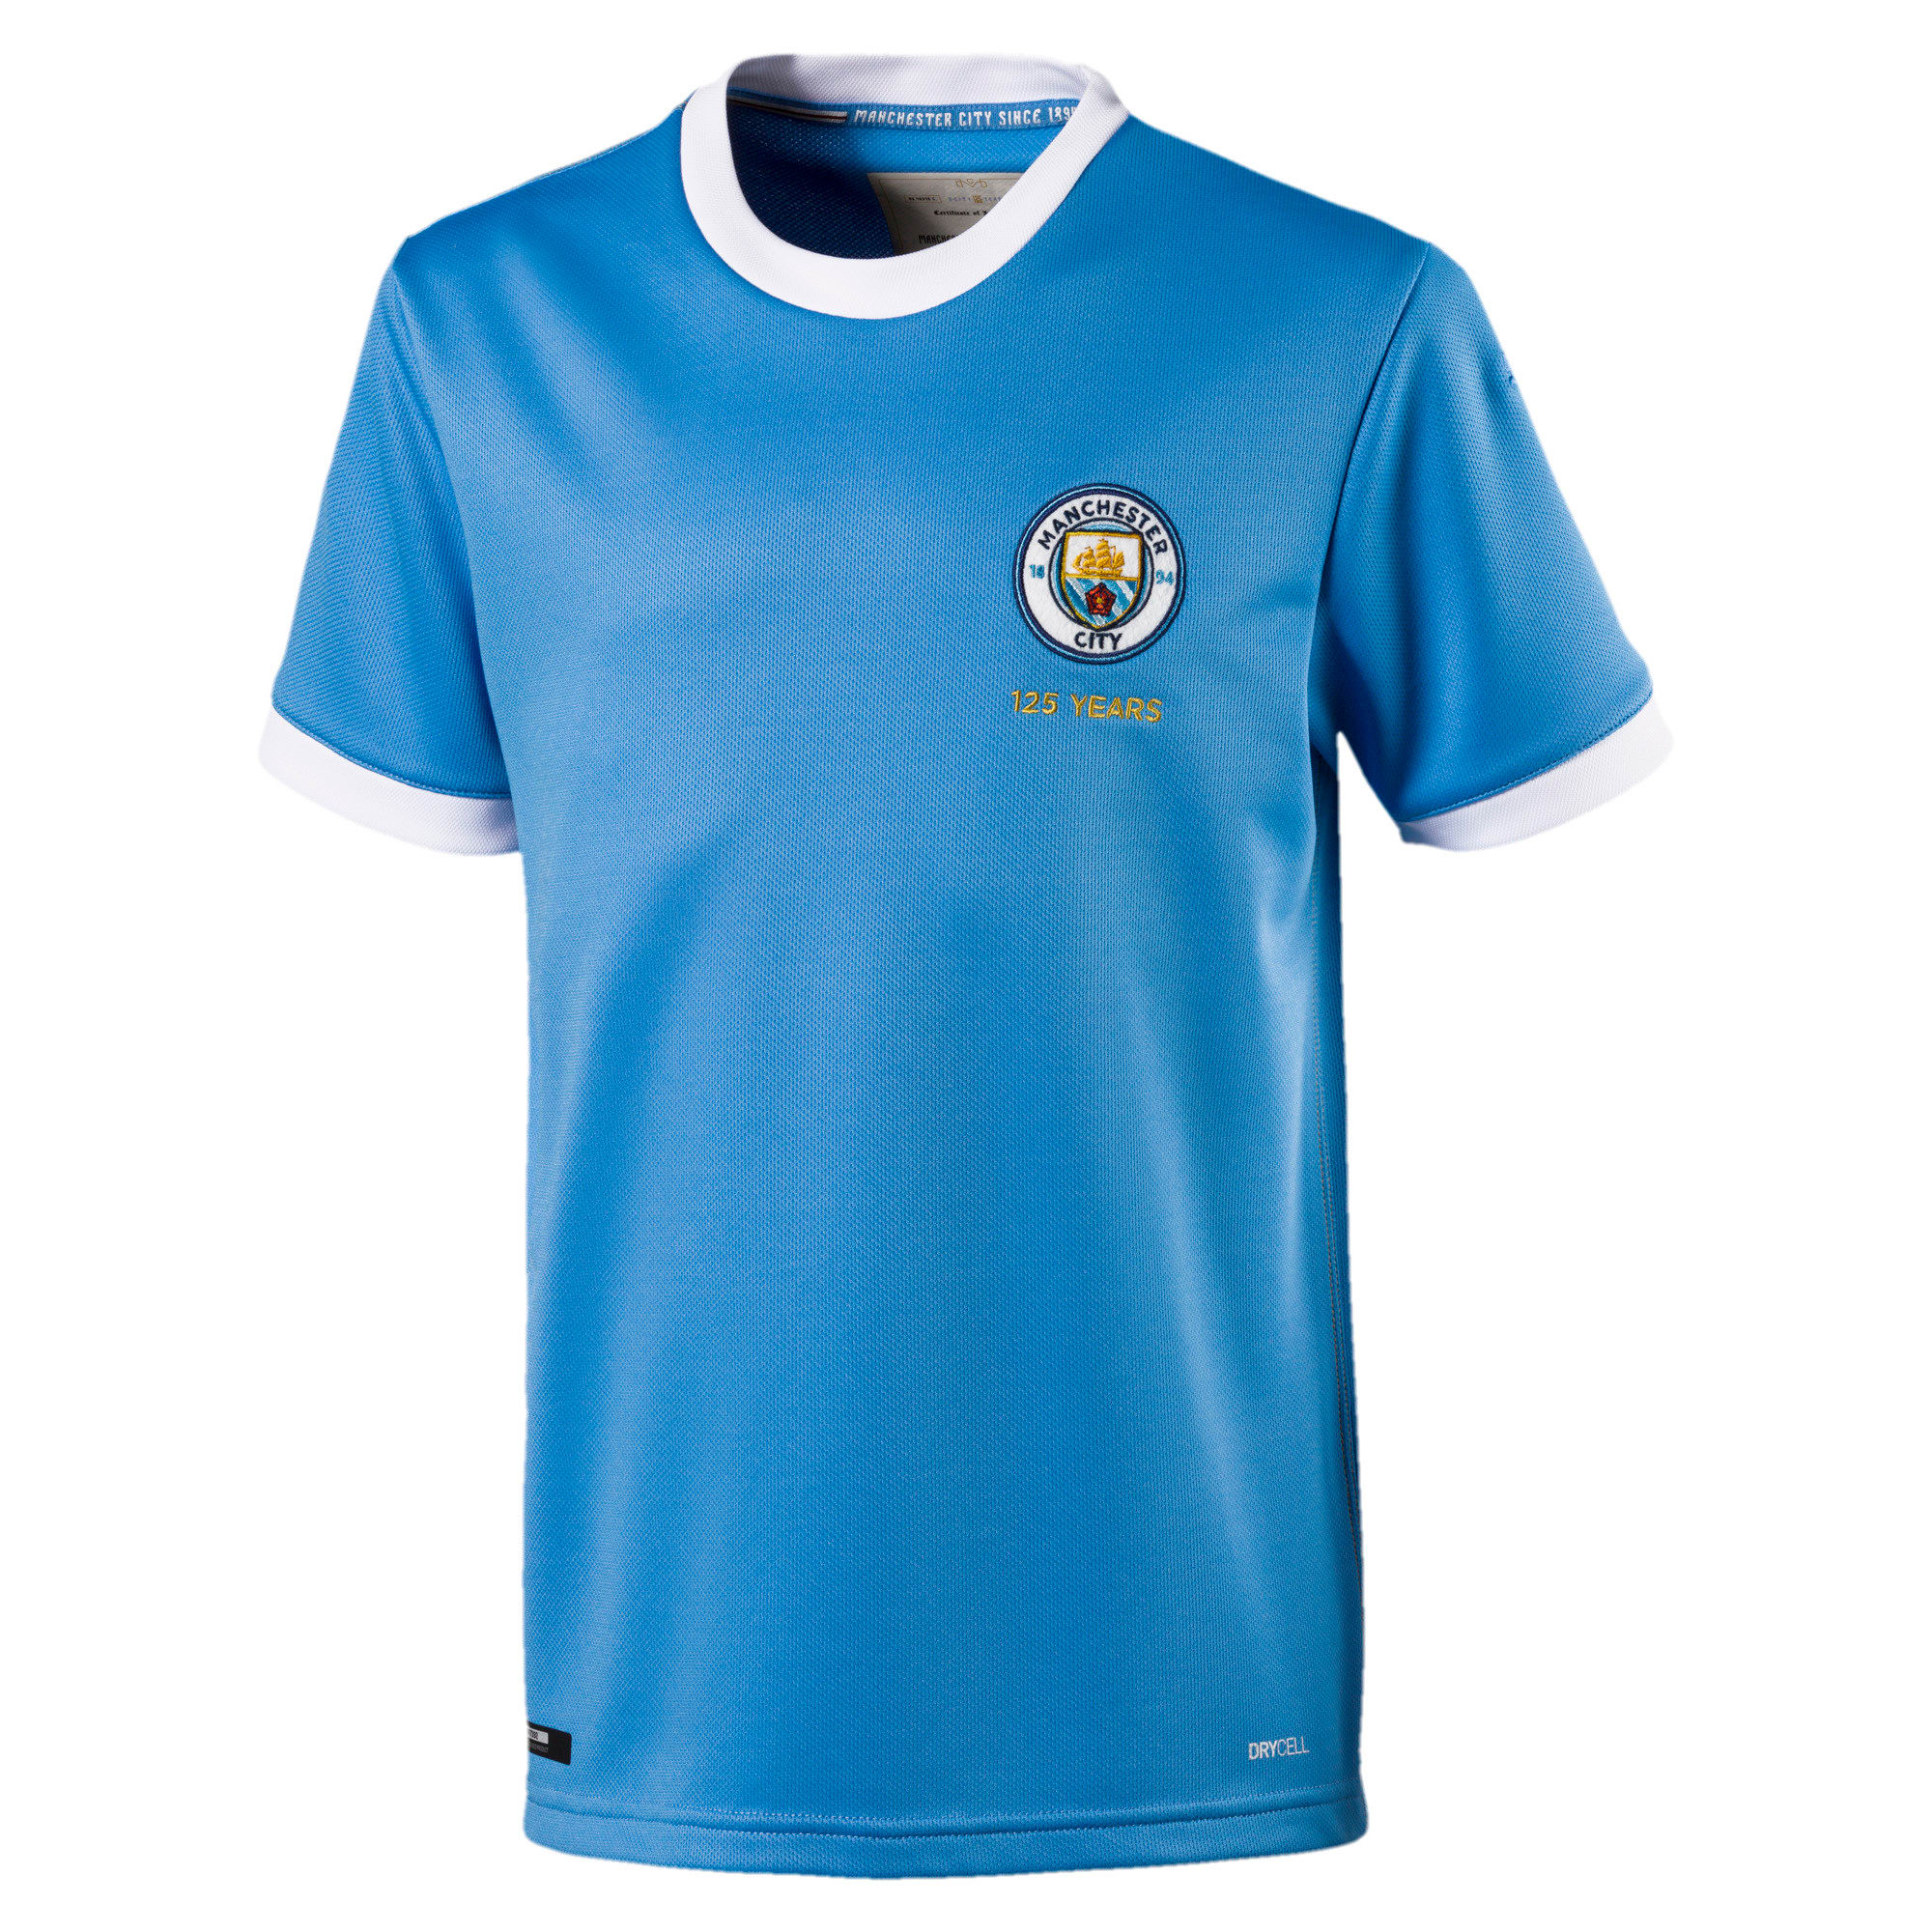 Thumbnail 1 van Manchester City 125 Year Anniversary shirt voor kinderen, Marina-Puma White, medium